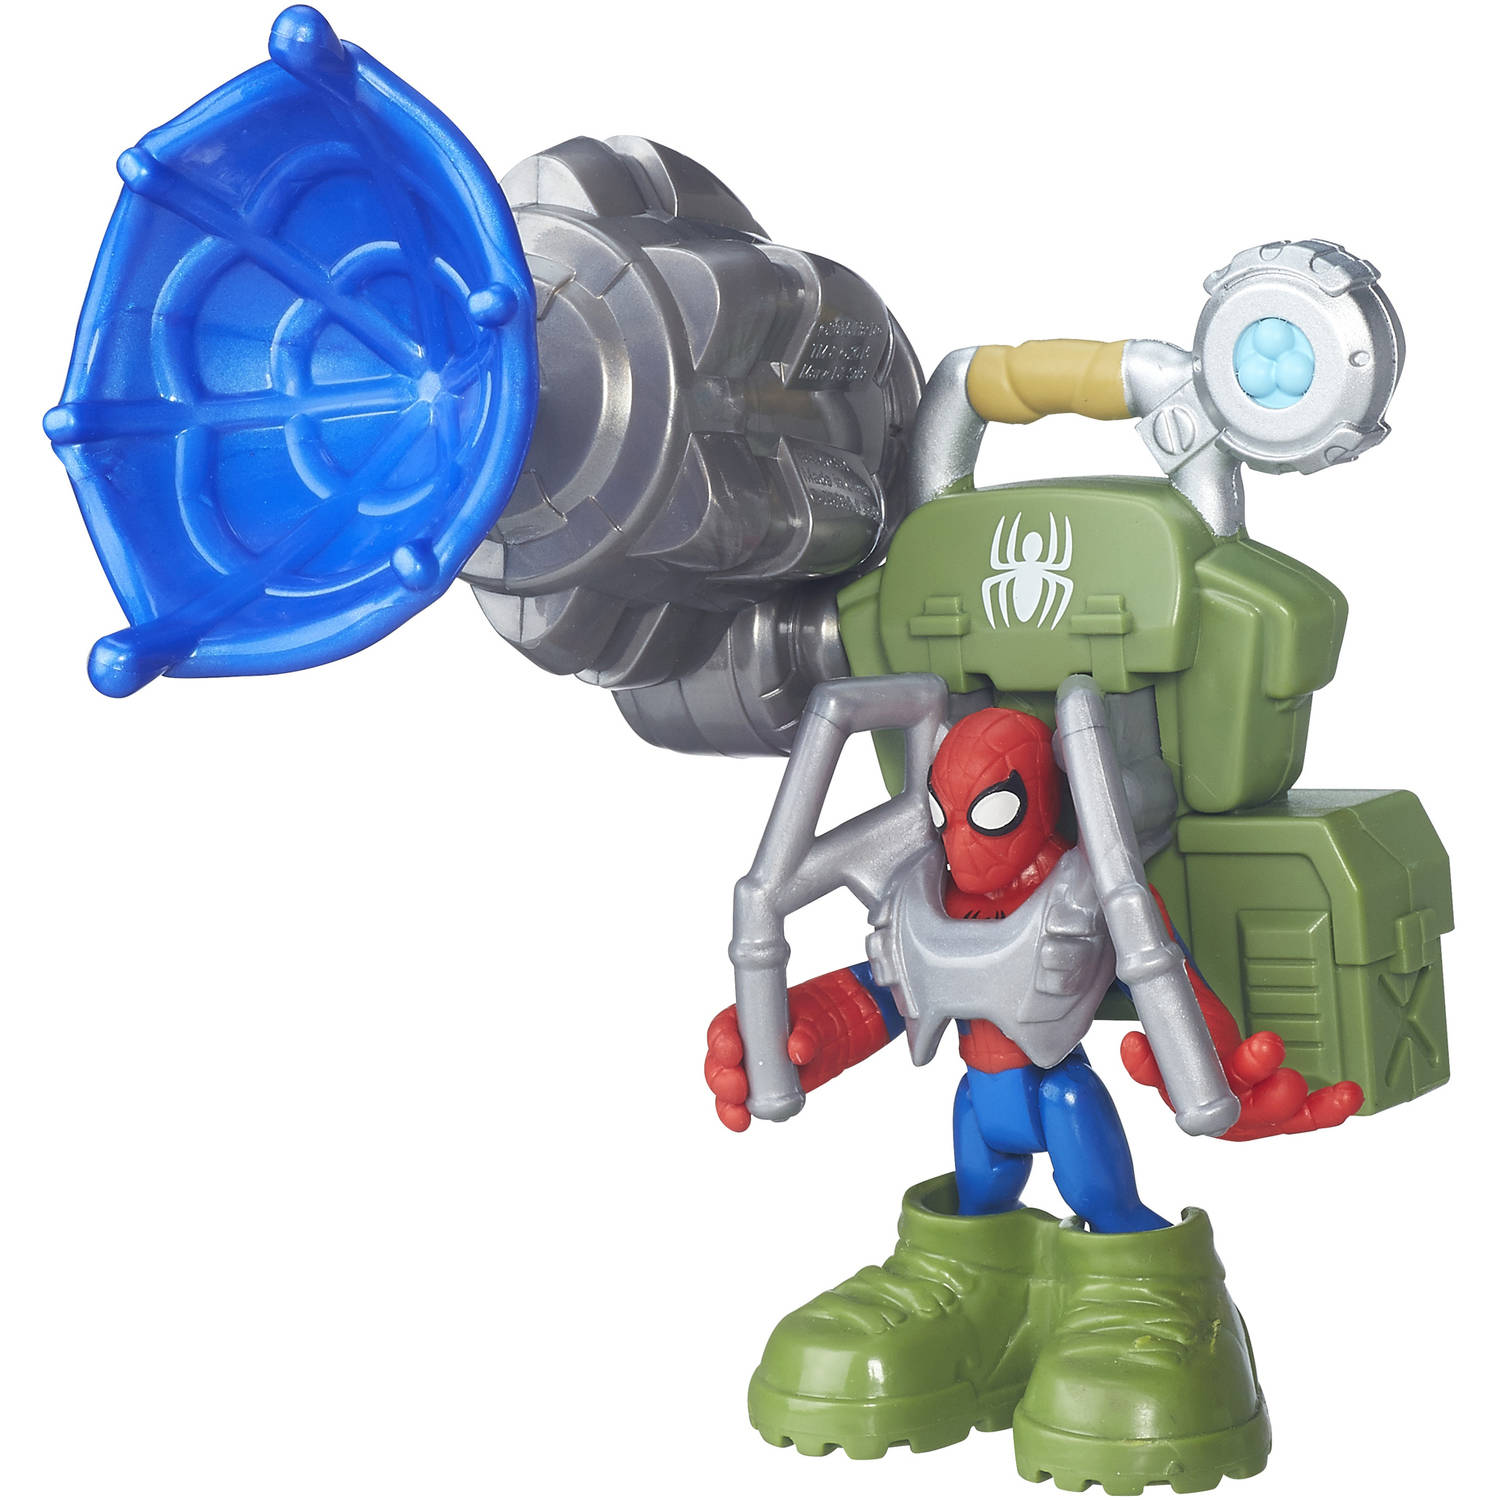 Spiderman Toys And Room Decor